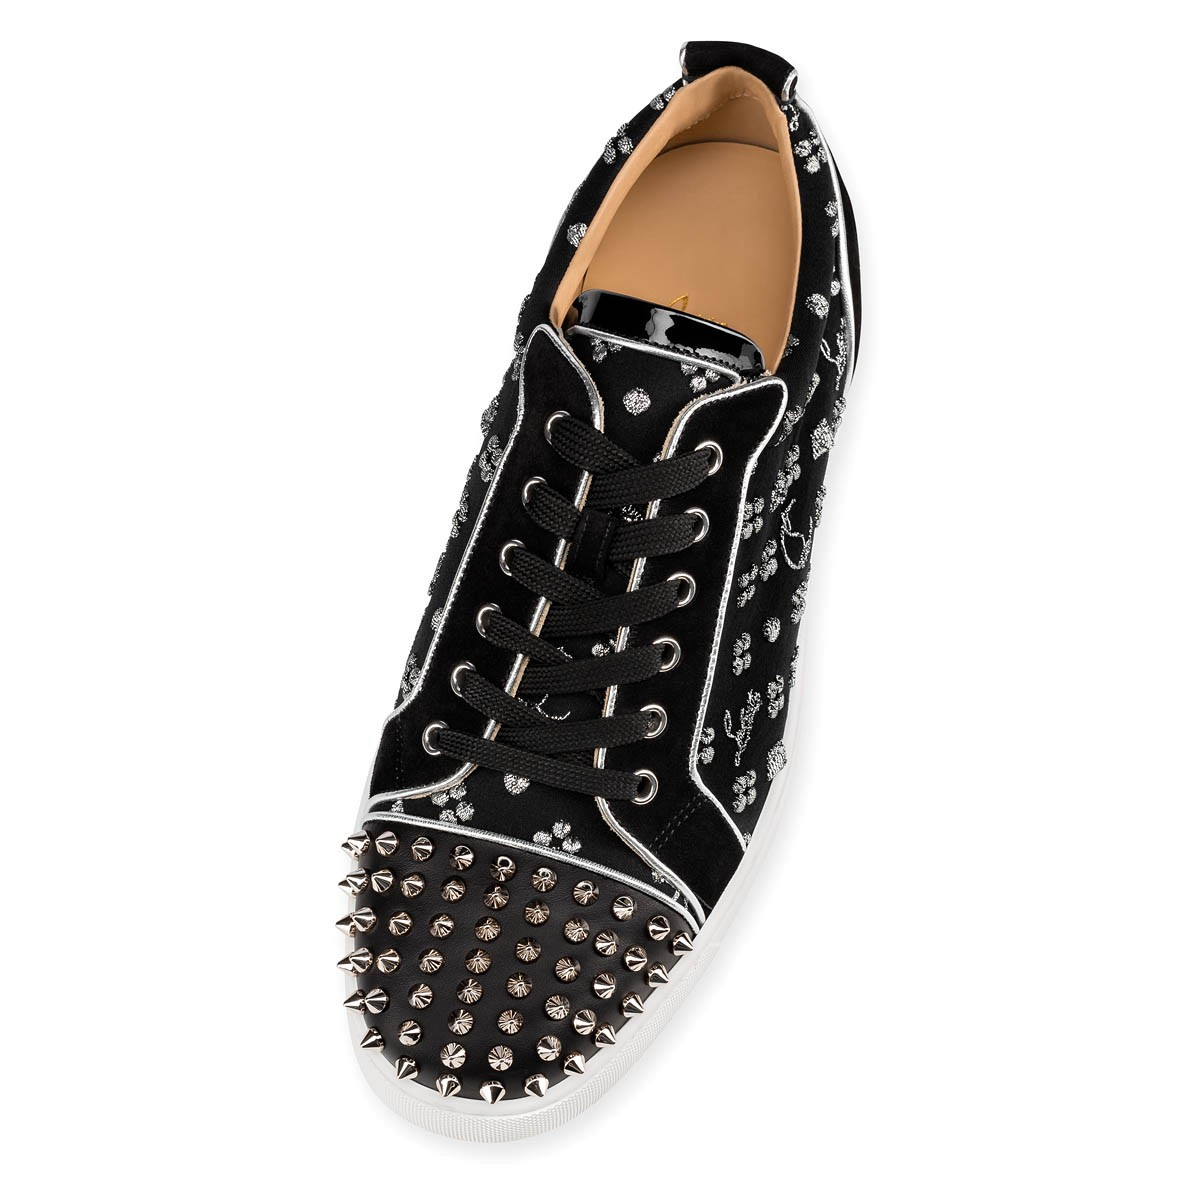 Shoes - Louis Junior Spikes Orlato Men's Flat - Christian Louboutin